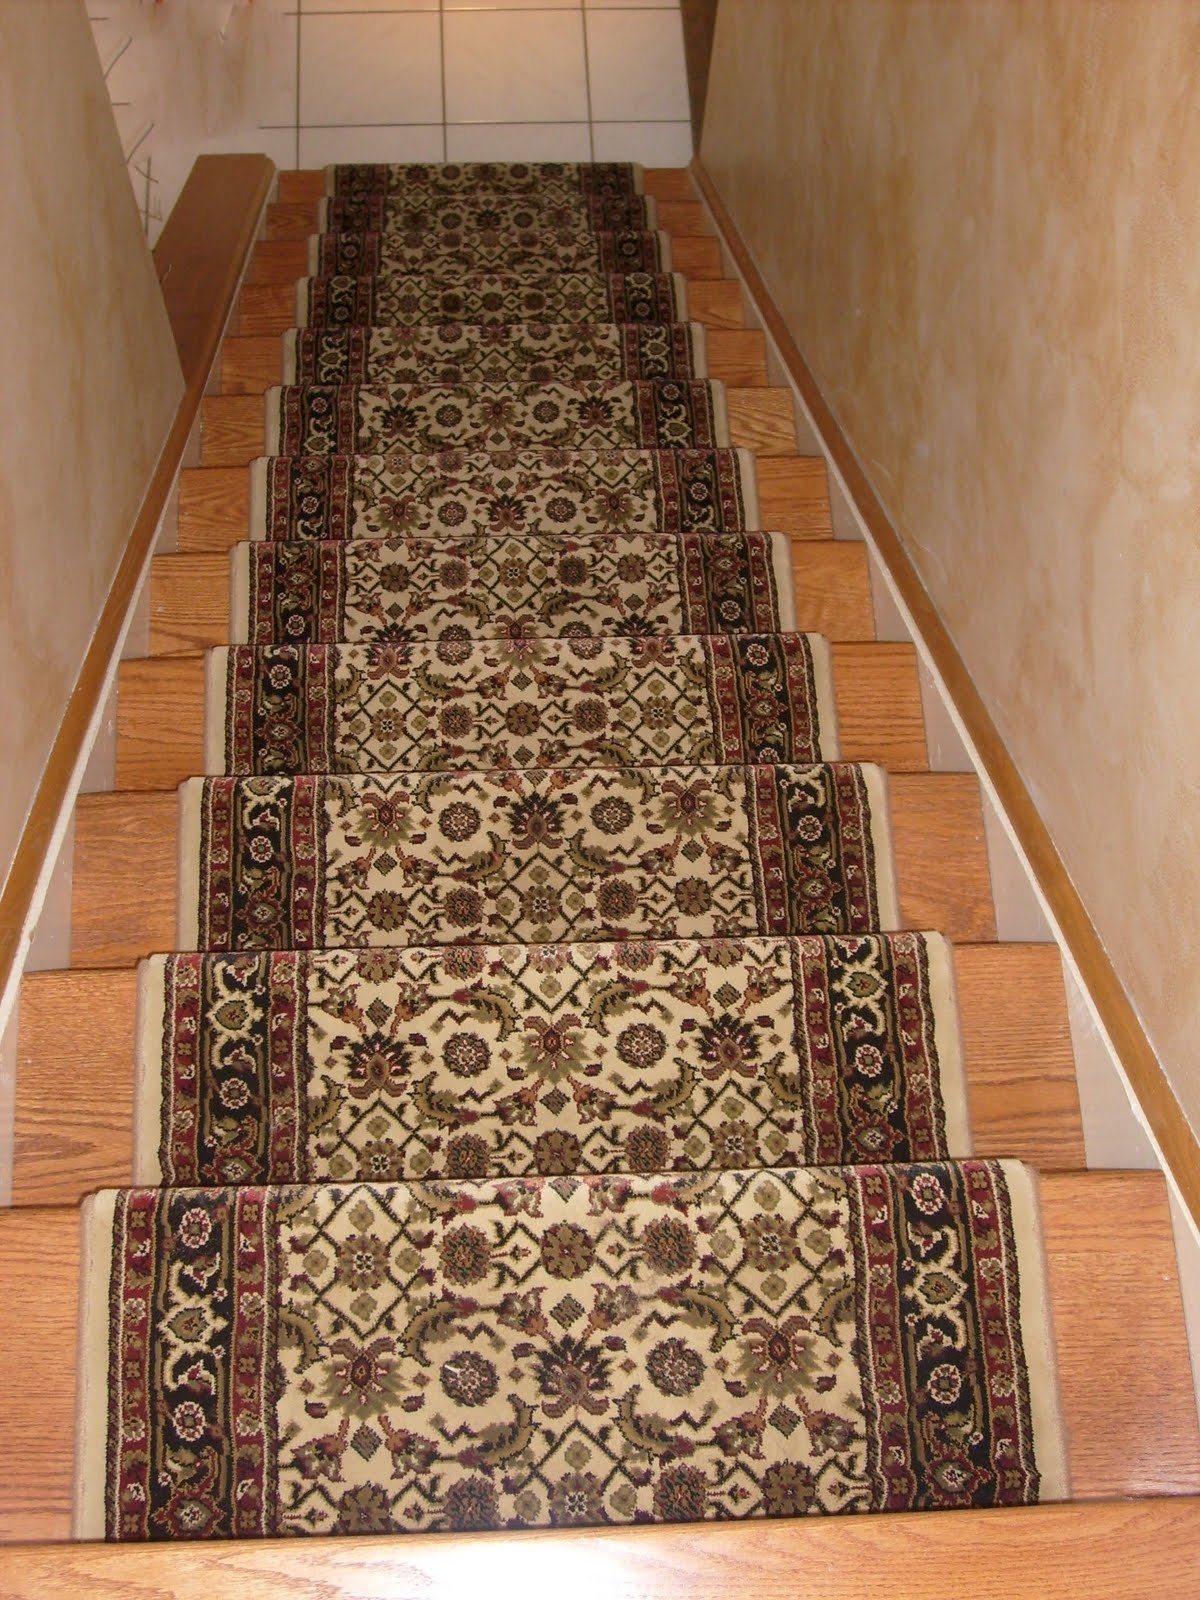 20 Best Of Hallway Carpet Runners By The Foot   Carpet Stair Runners By The Foot